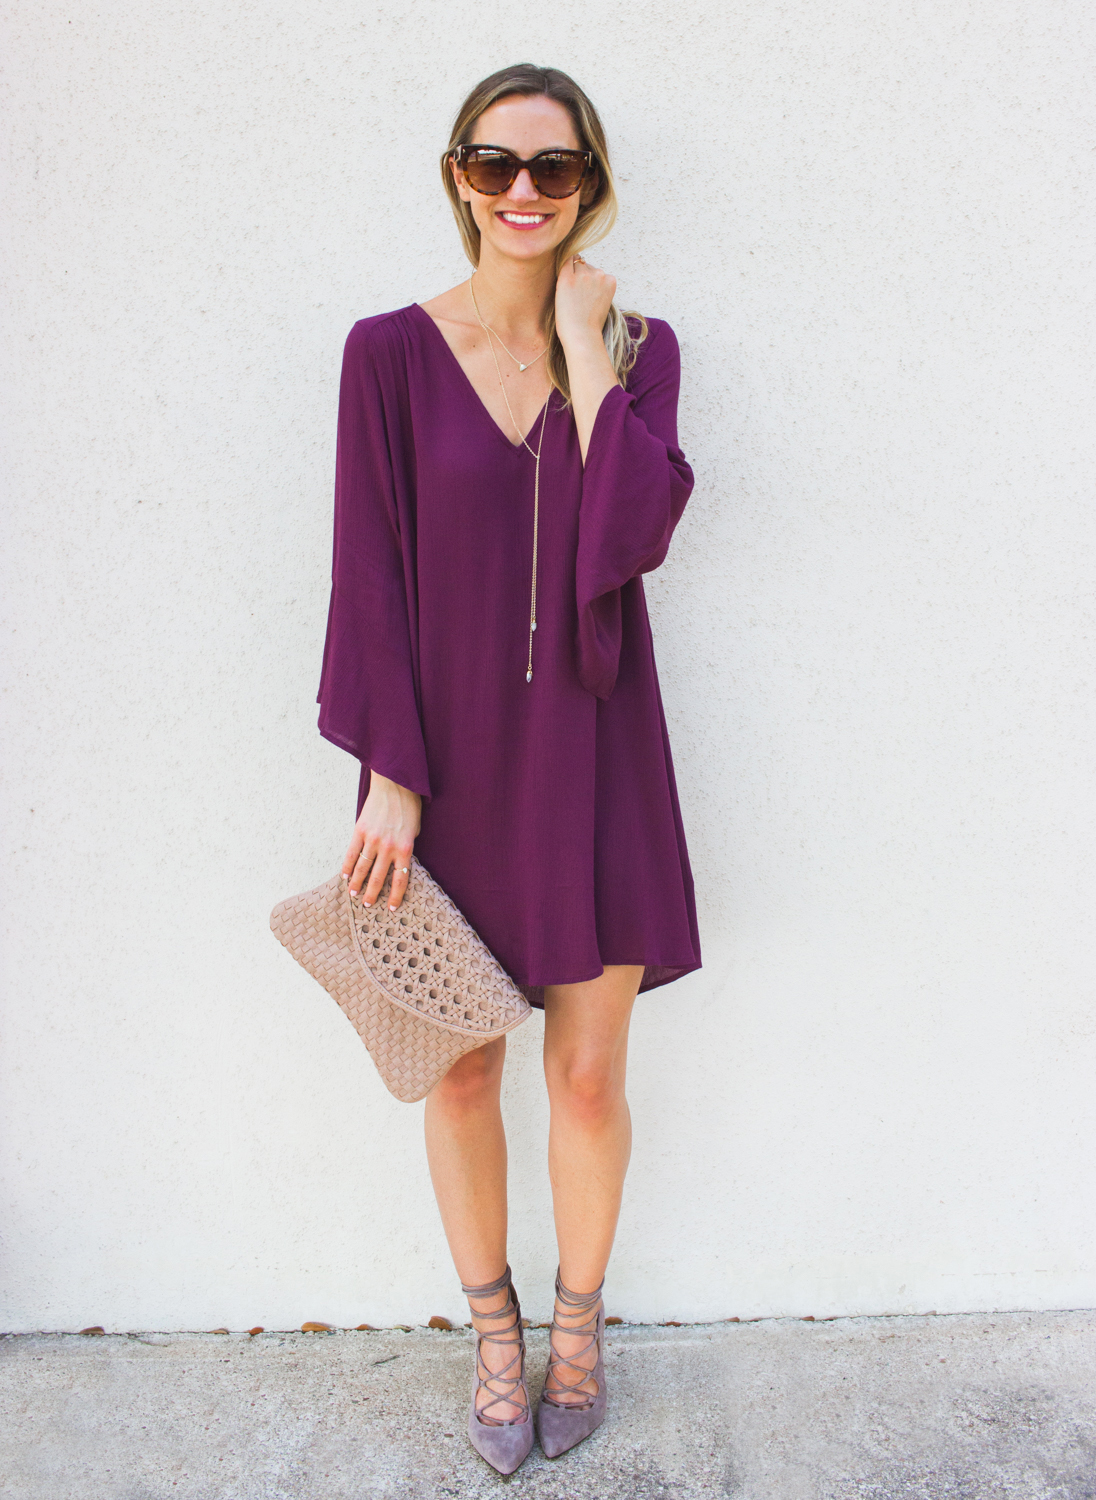 livvyland-blog-olivia-watson-austin-texas-fashion-blogger-bell-sleeve-maroon-wine-burgundy-oxblood-dress-lace-up-heels-6